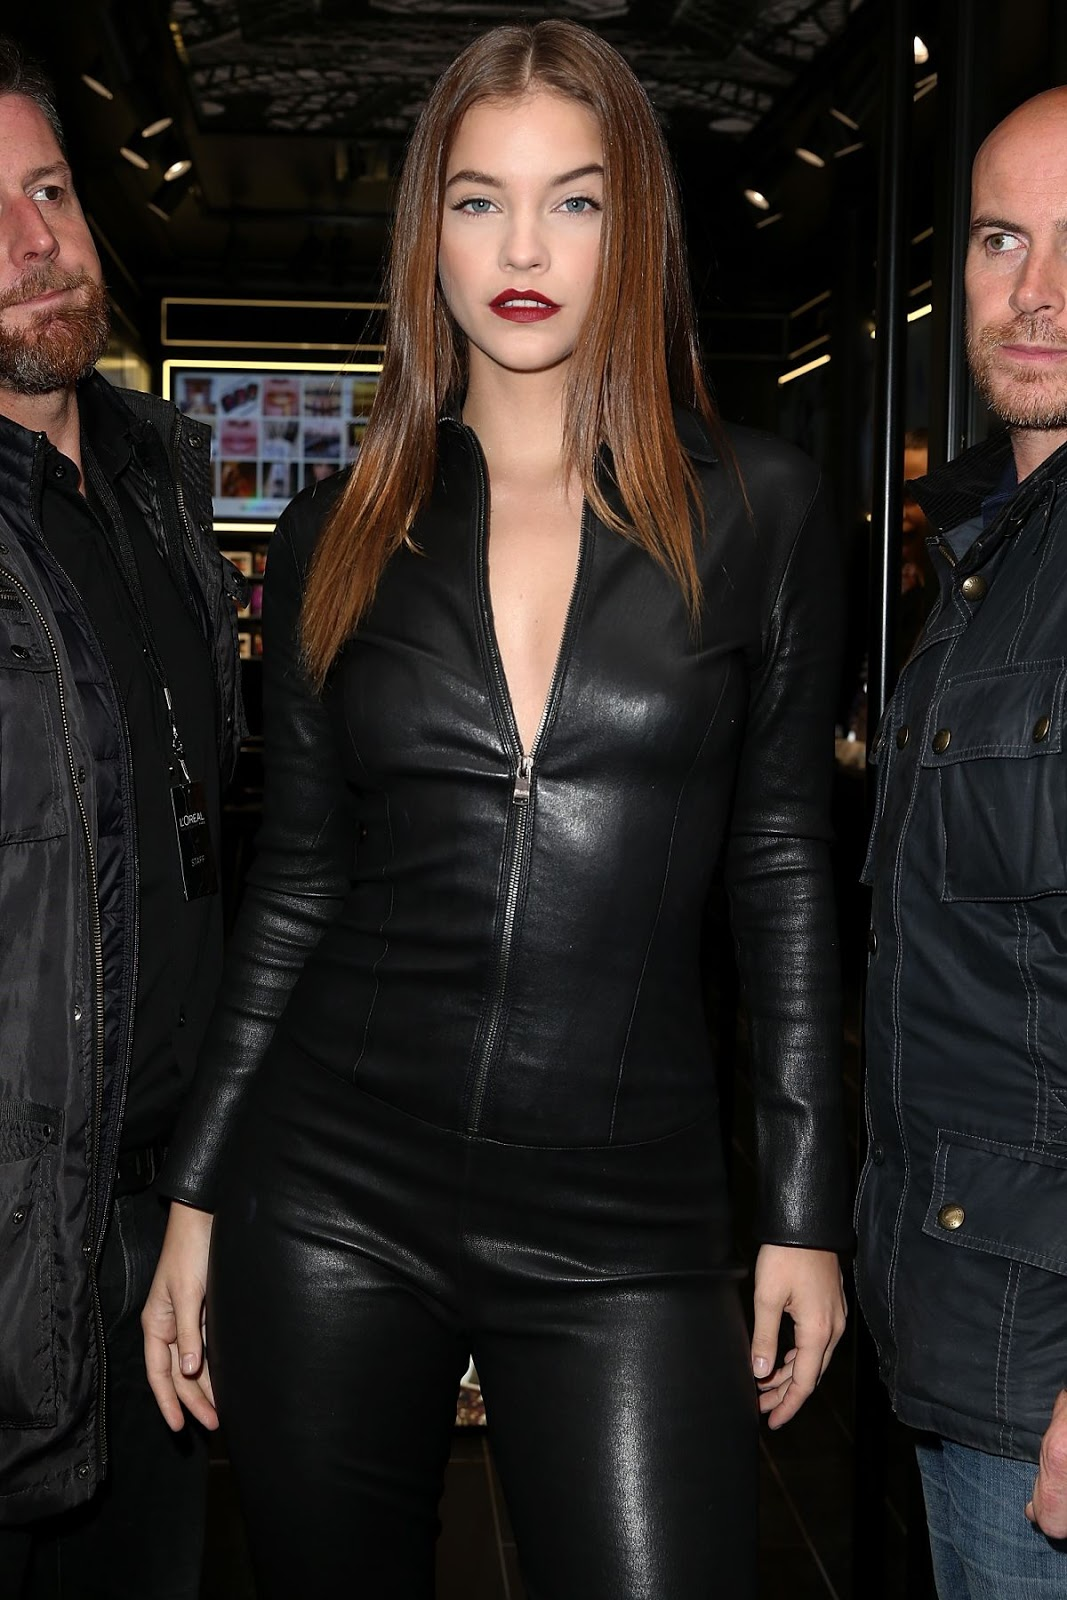 Barbara Palvin in Leather